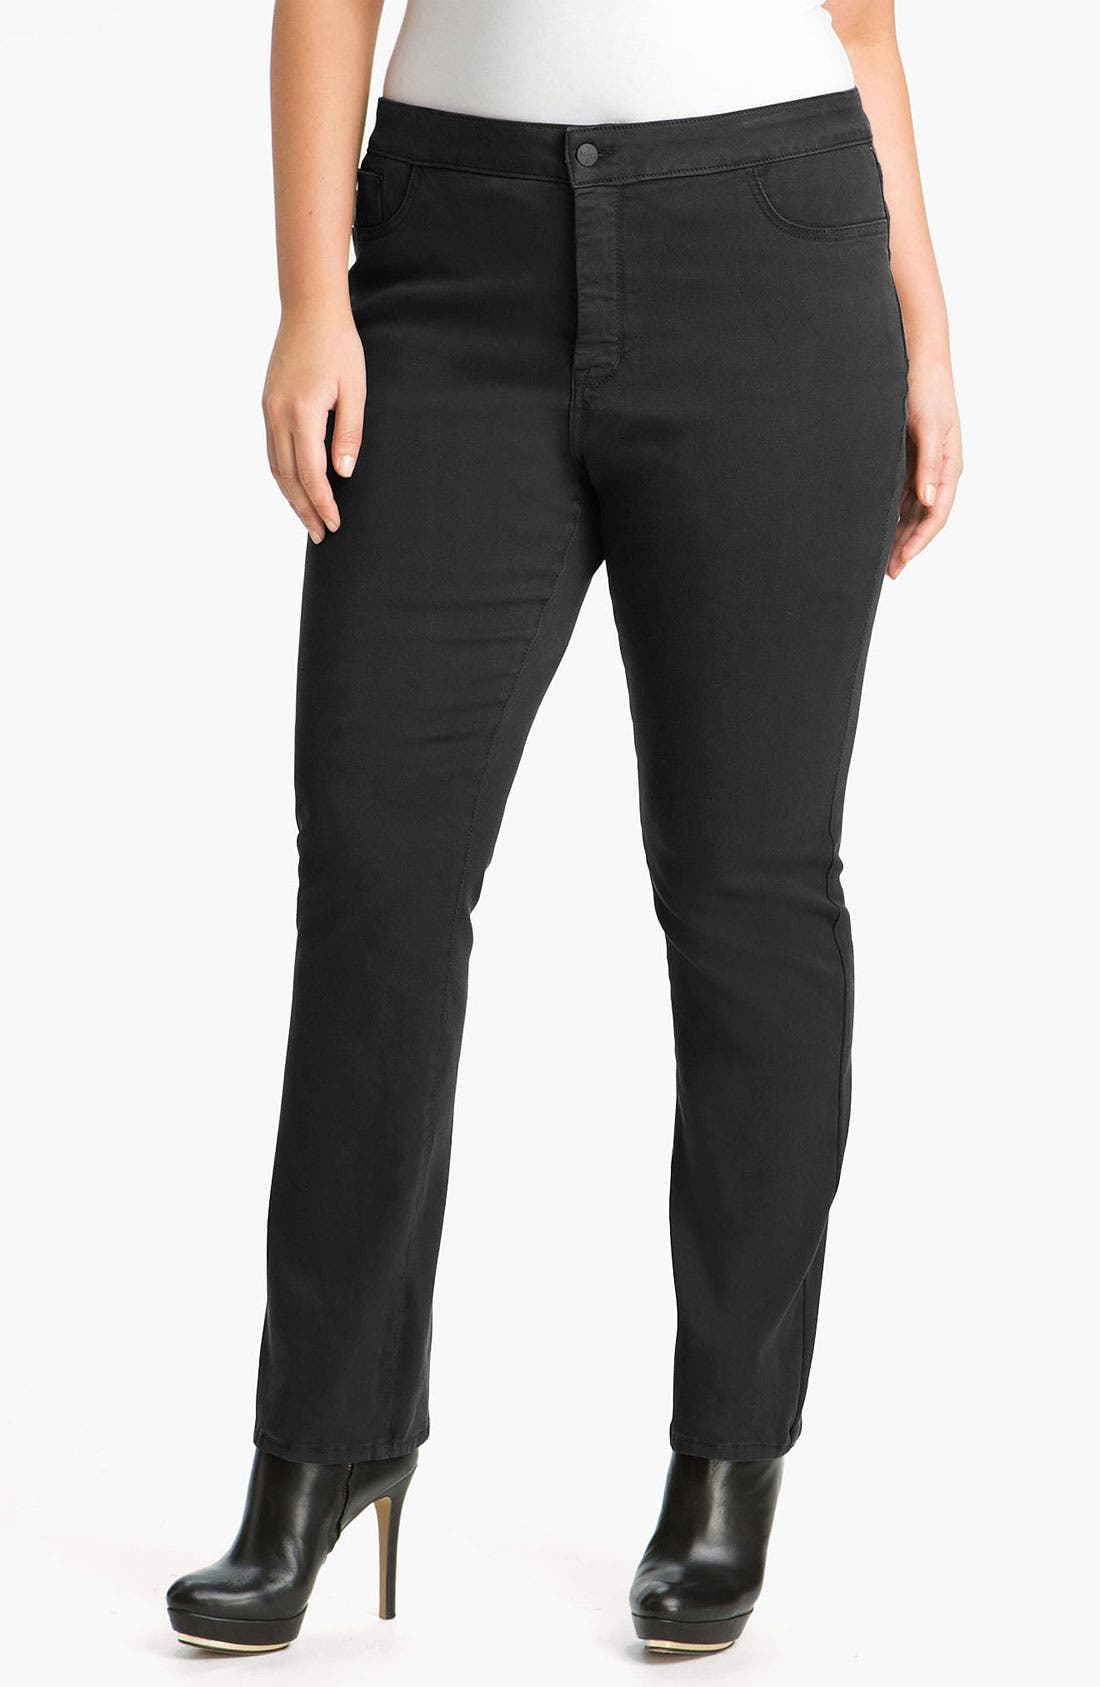 Main Image - NYDJ 'Jaclyn' Stretch Skinny Jeans (Plus)